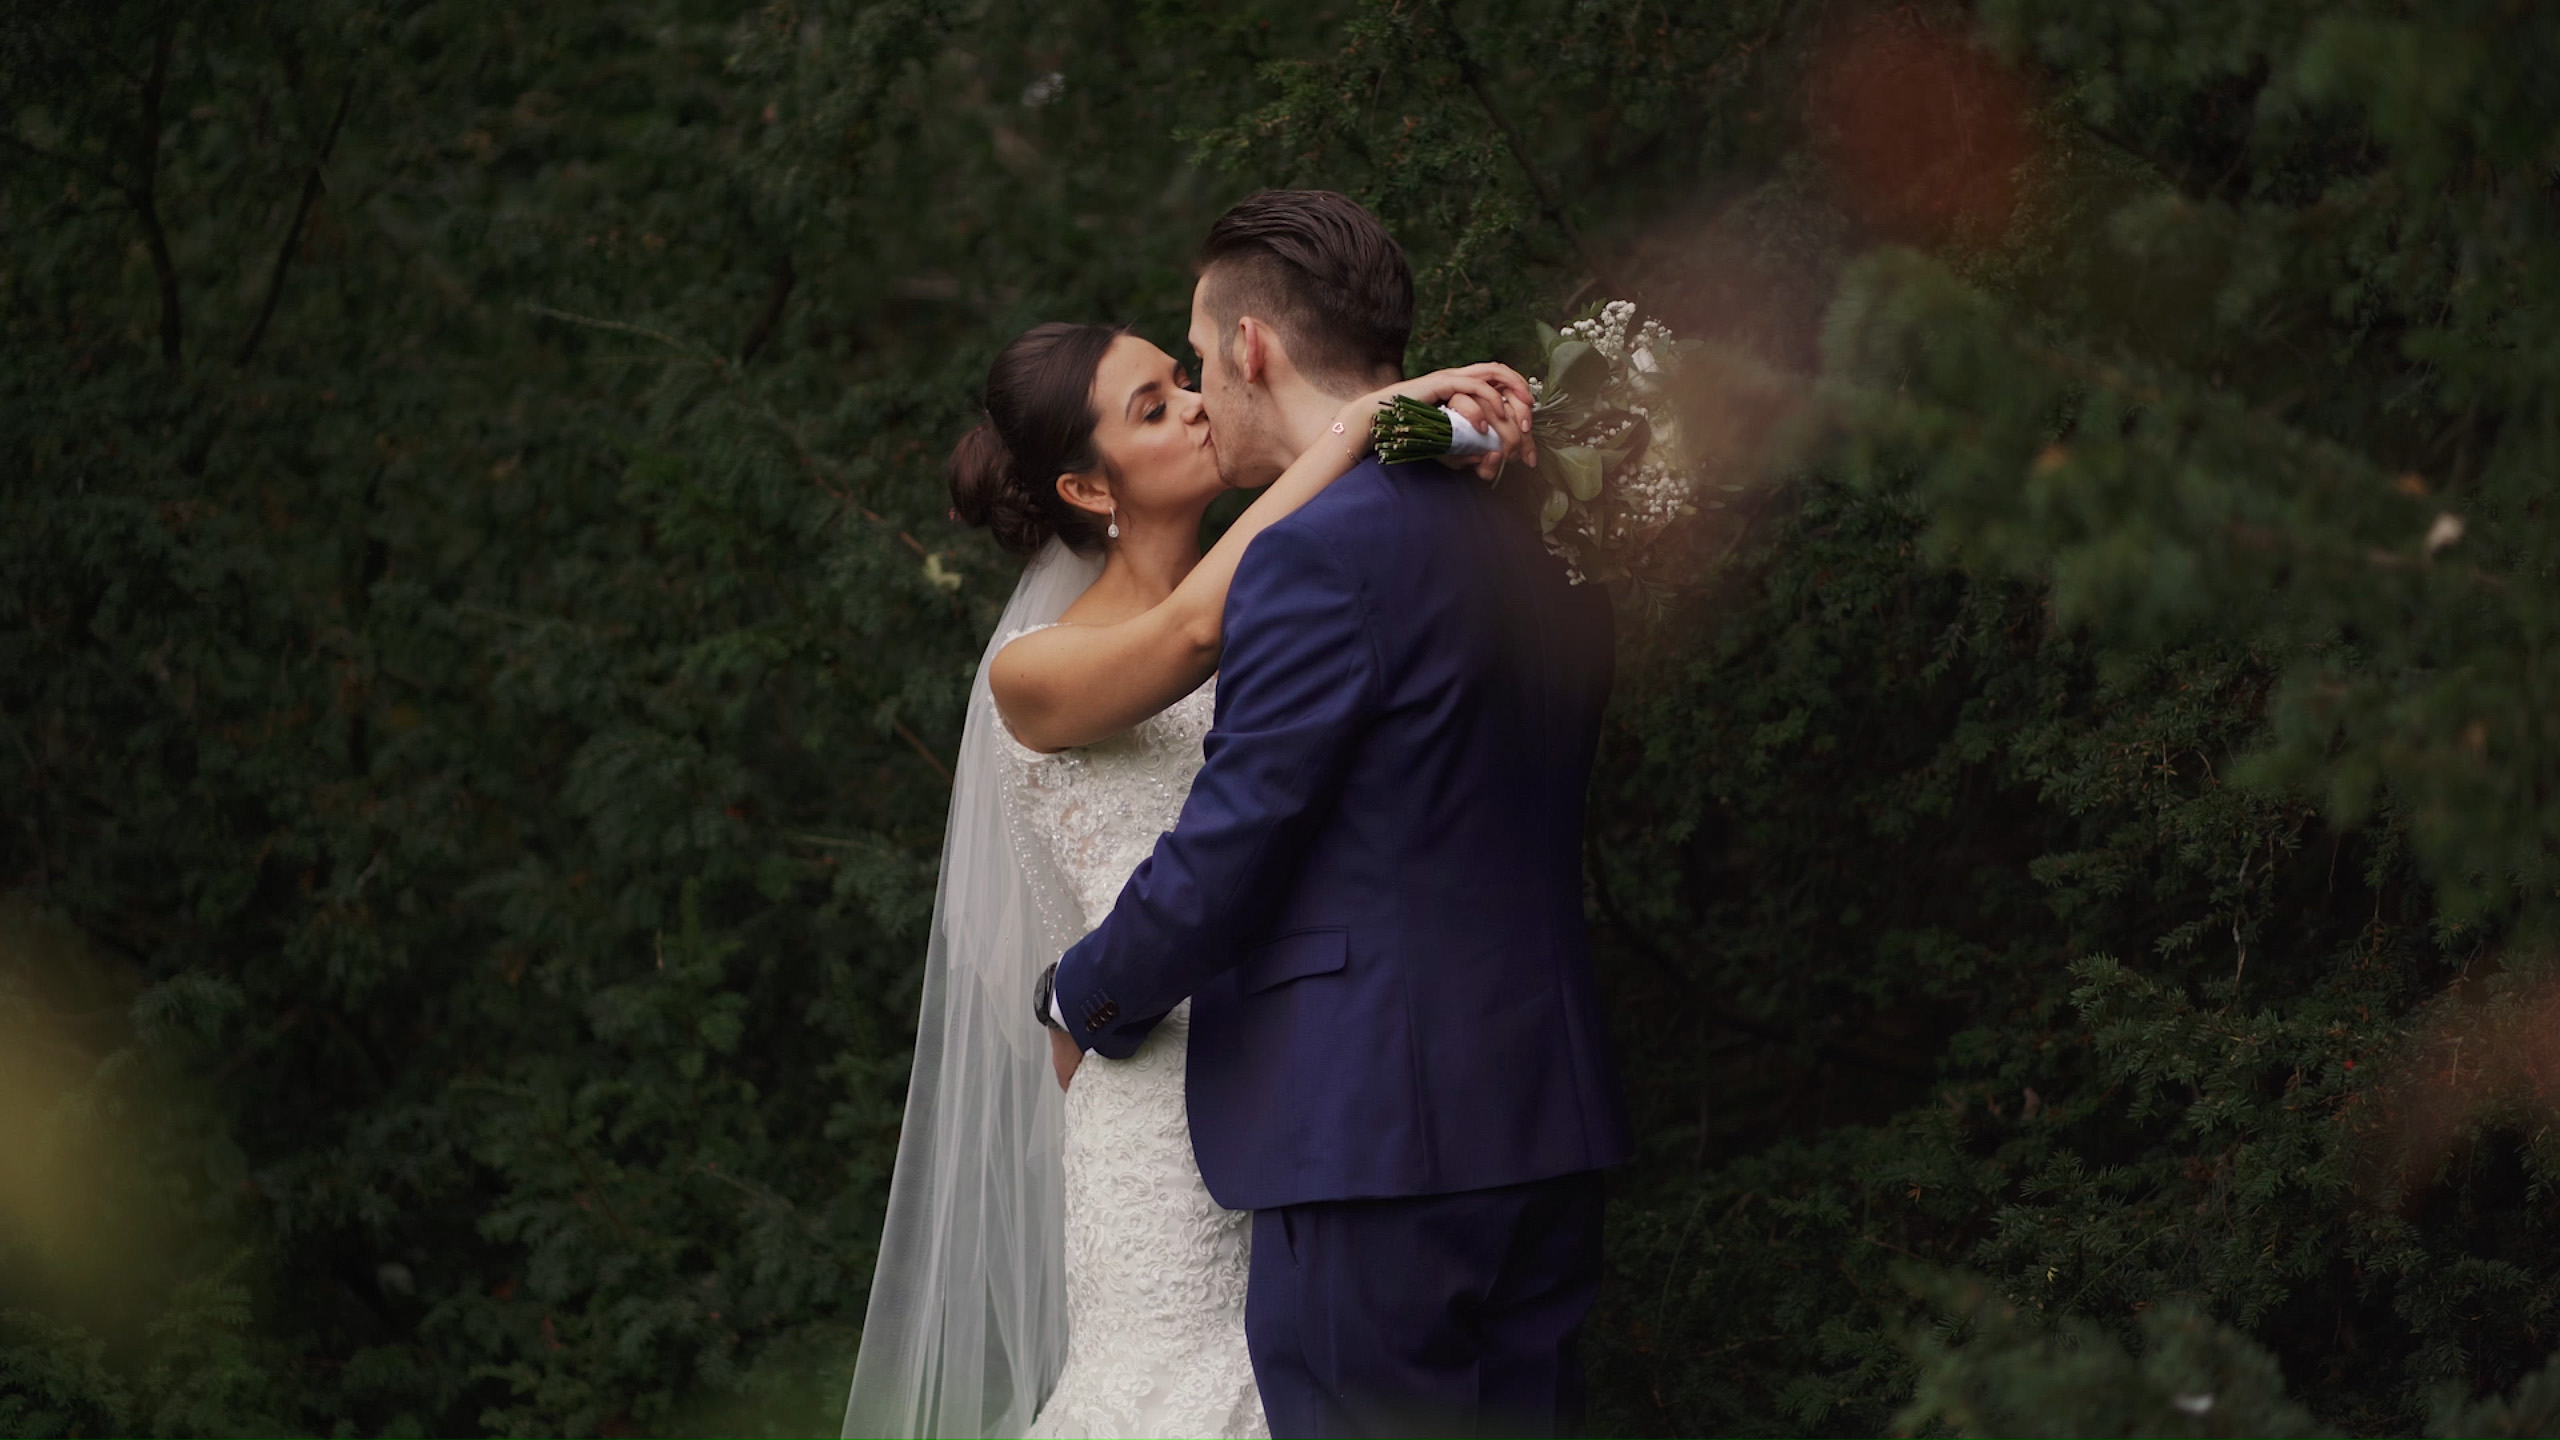 Wedding Videography in Lincolnshire